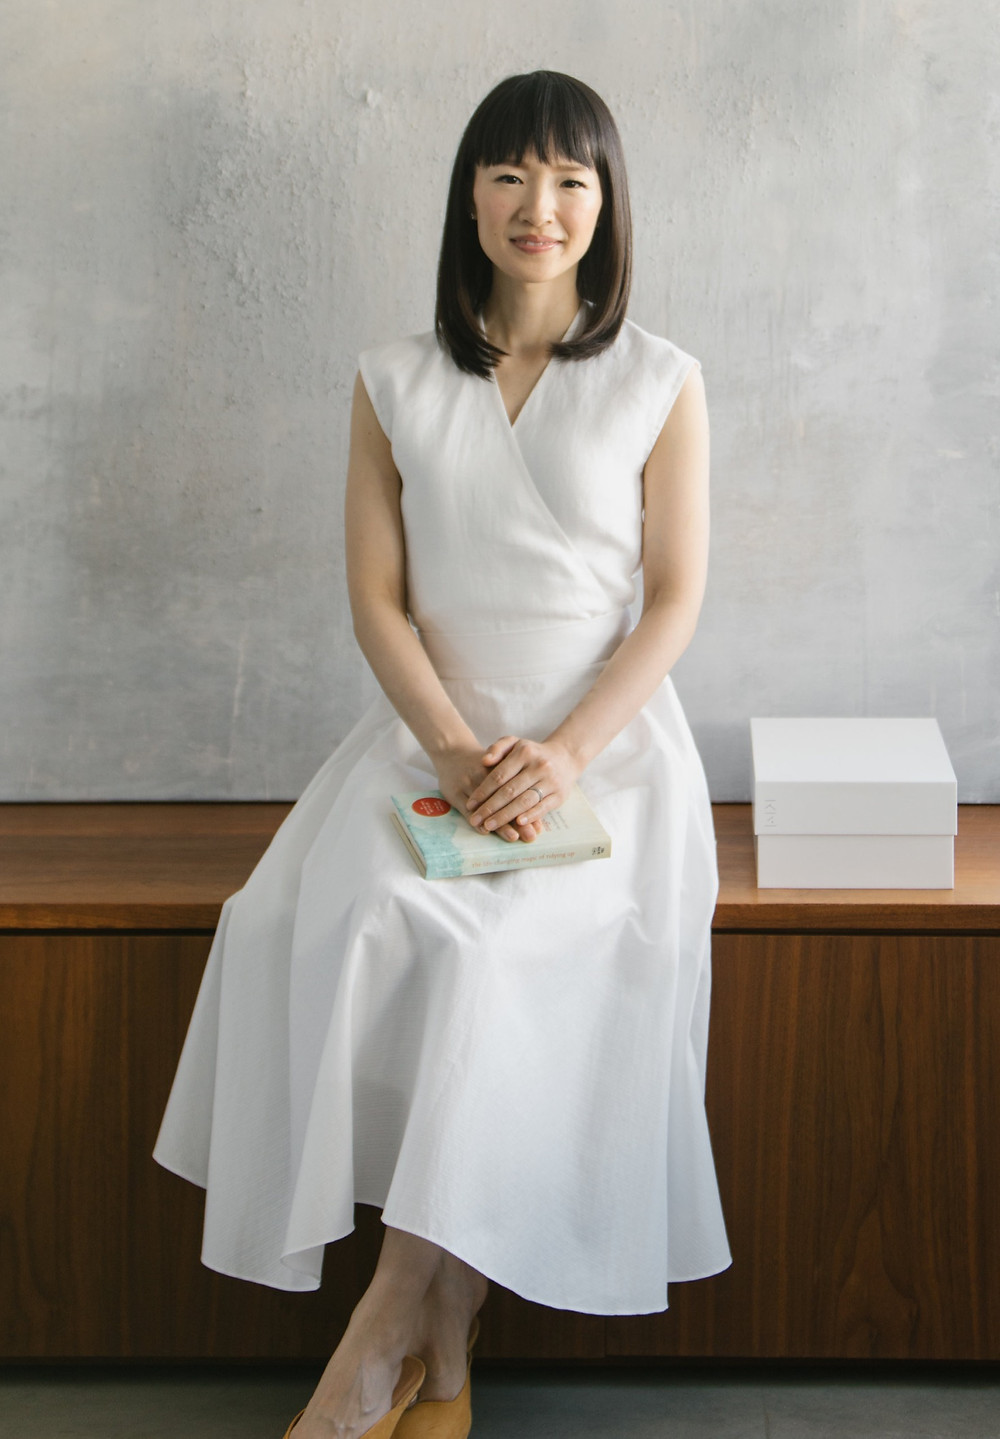 Japanese organising Expert Marie Kondo holding her book, The Life Changing Magic of Tidying